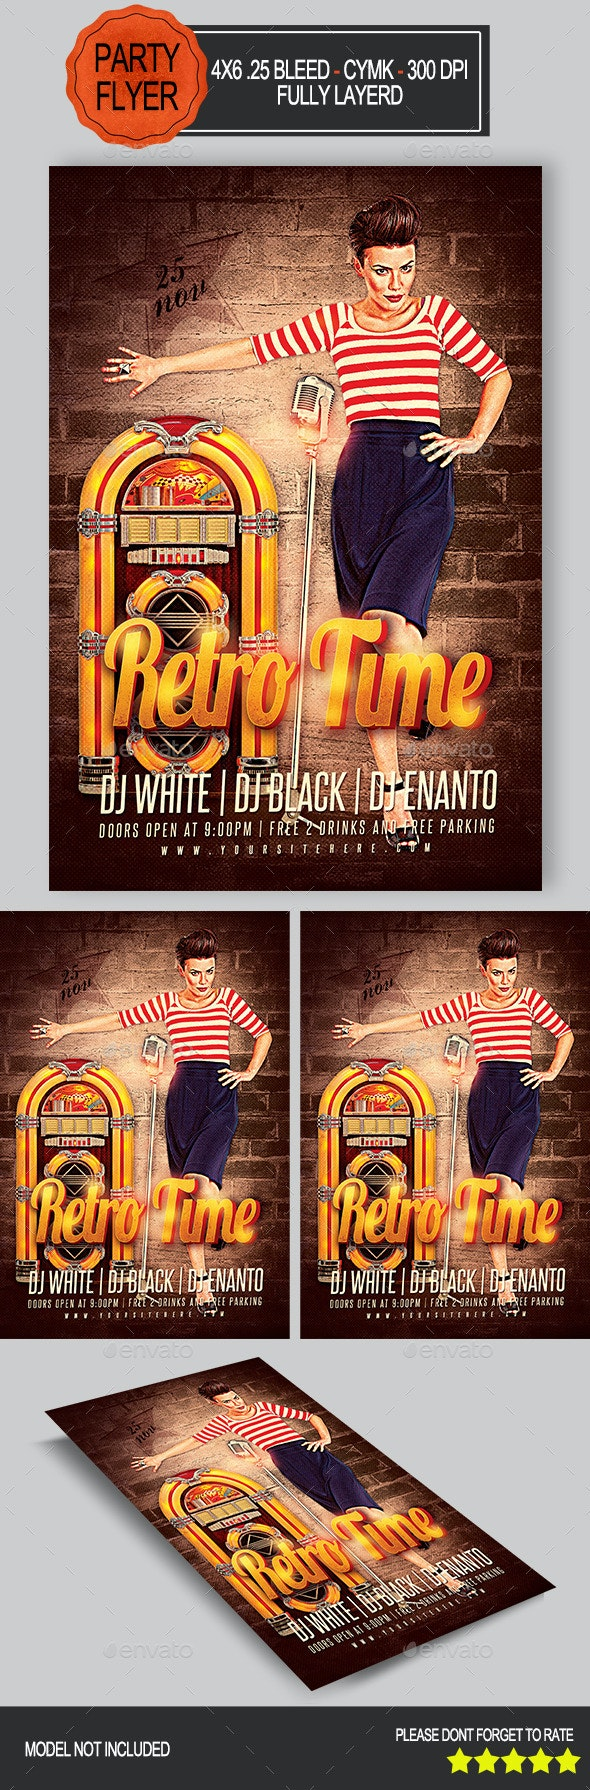 Retro Time Flyer   - Clubs & Parties Events